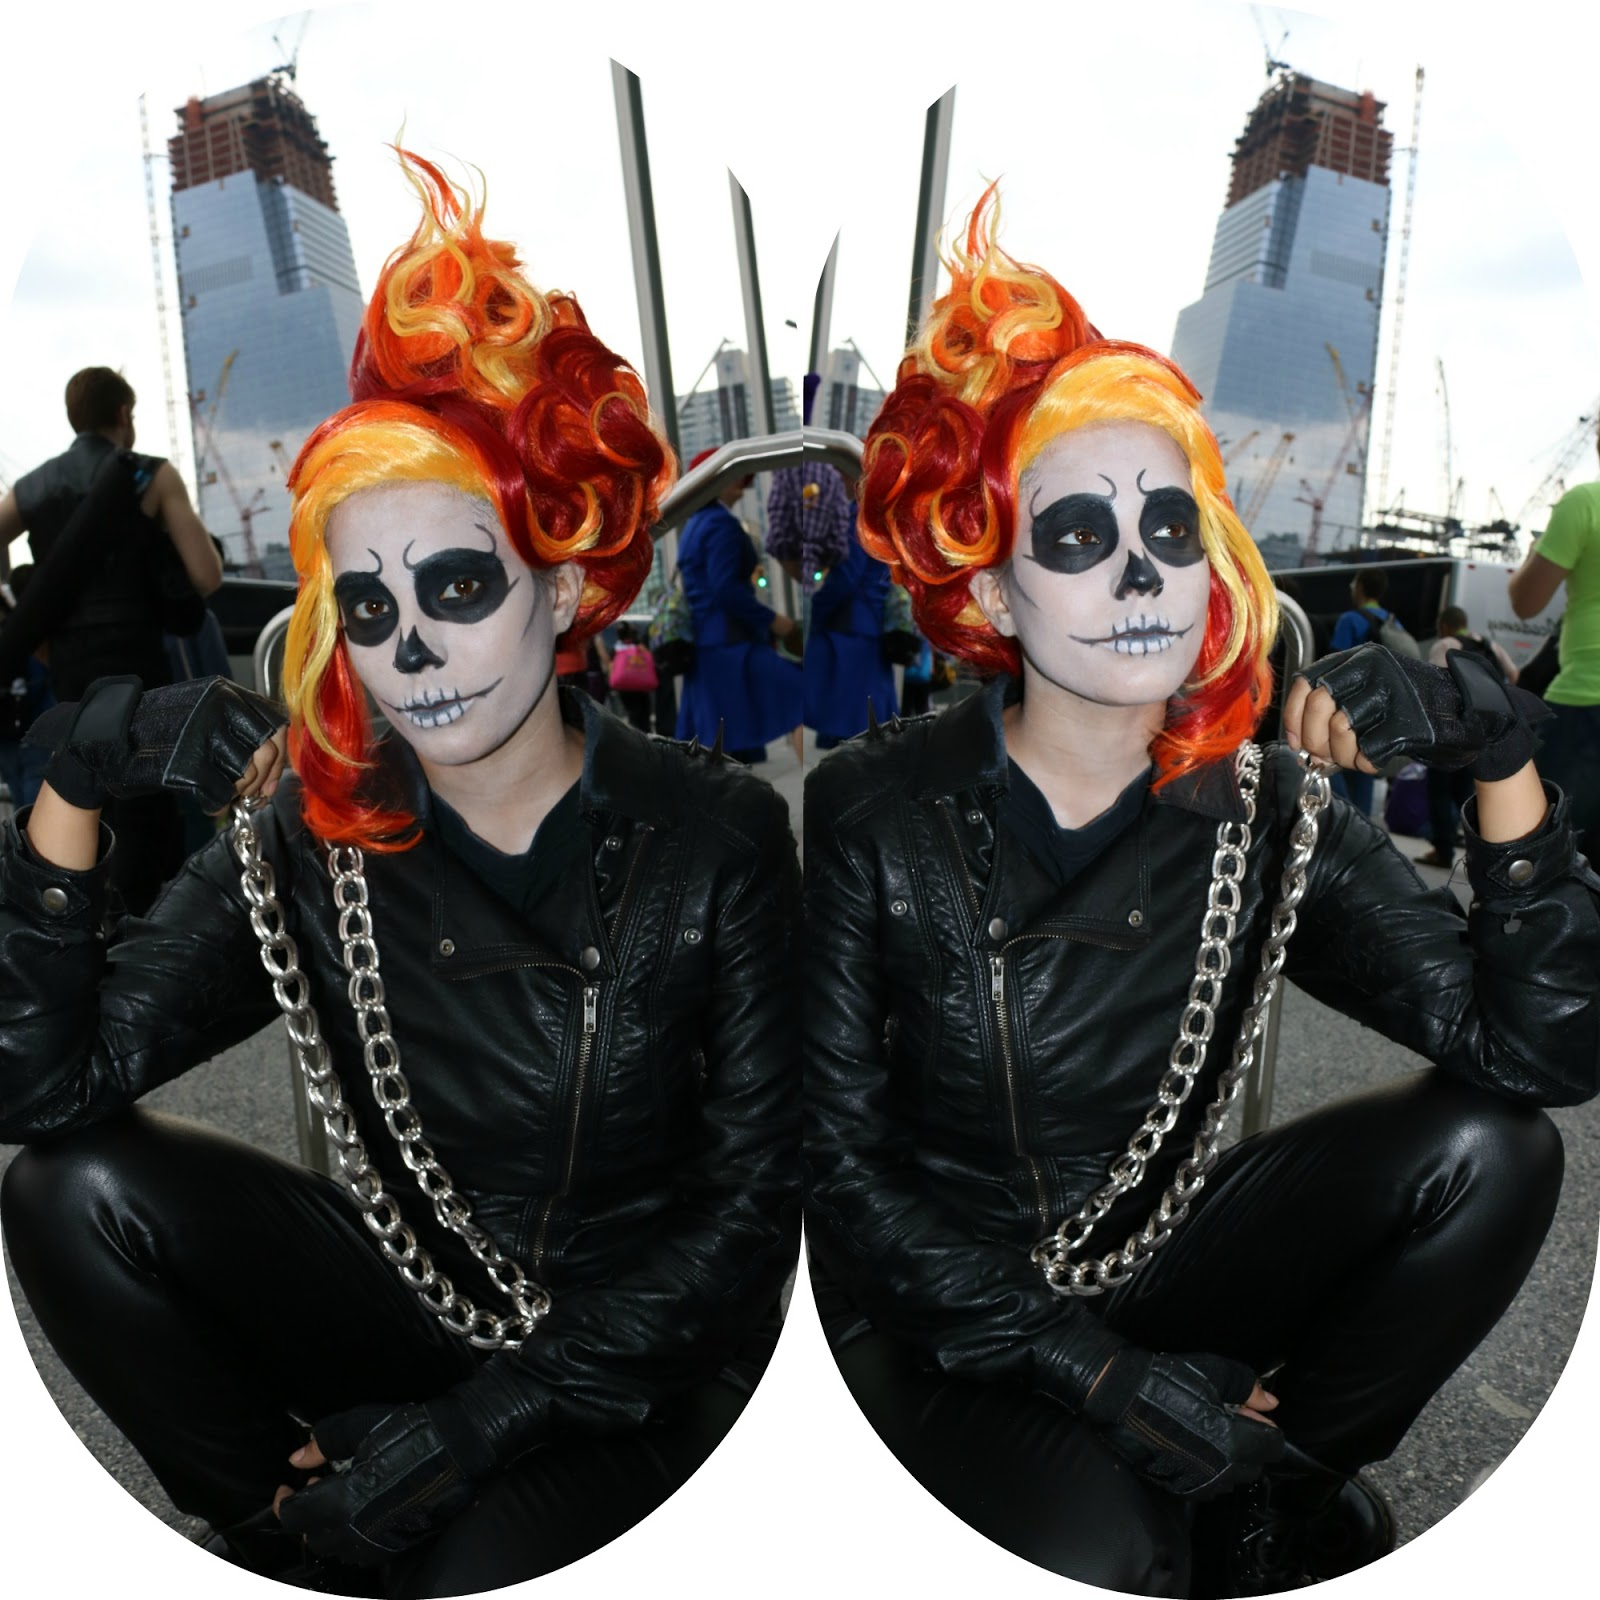 Ghost Rider Cosplay At New York Comic Con 2015. - Nubia's Nonsense